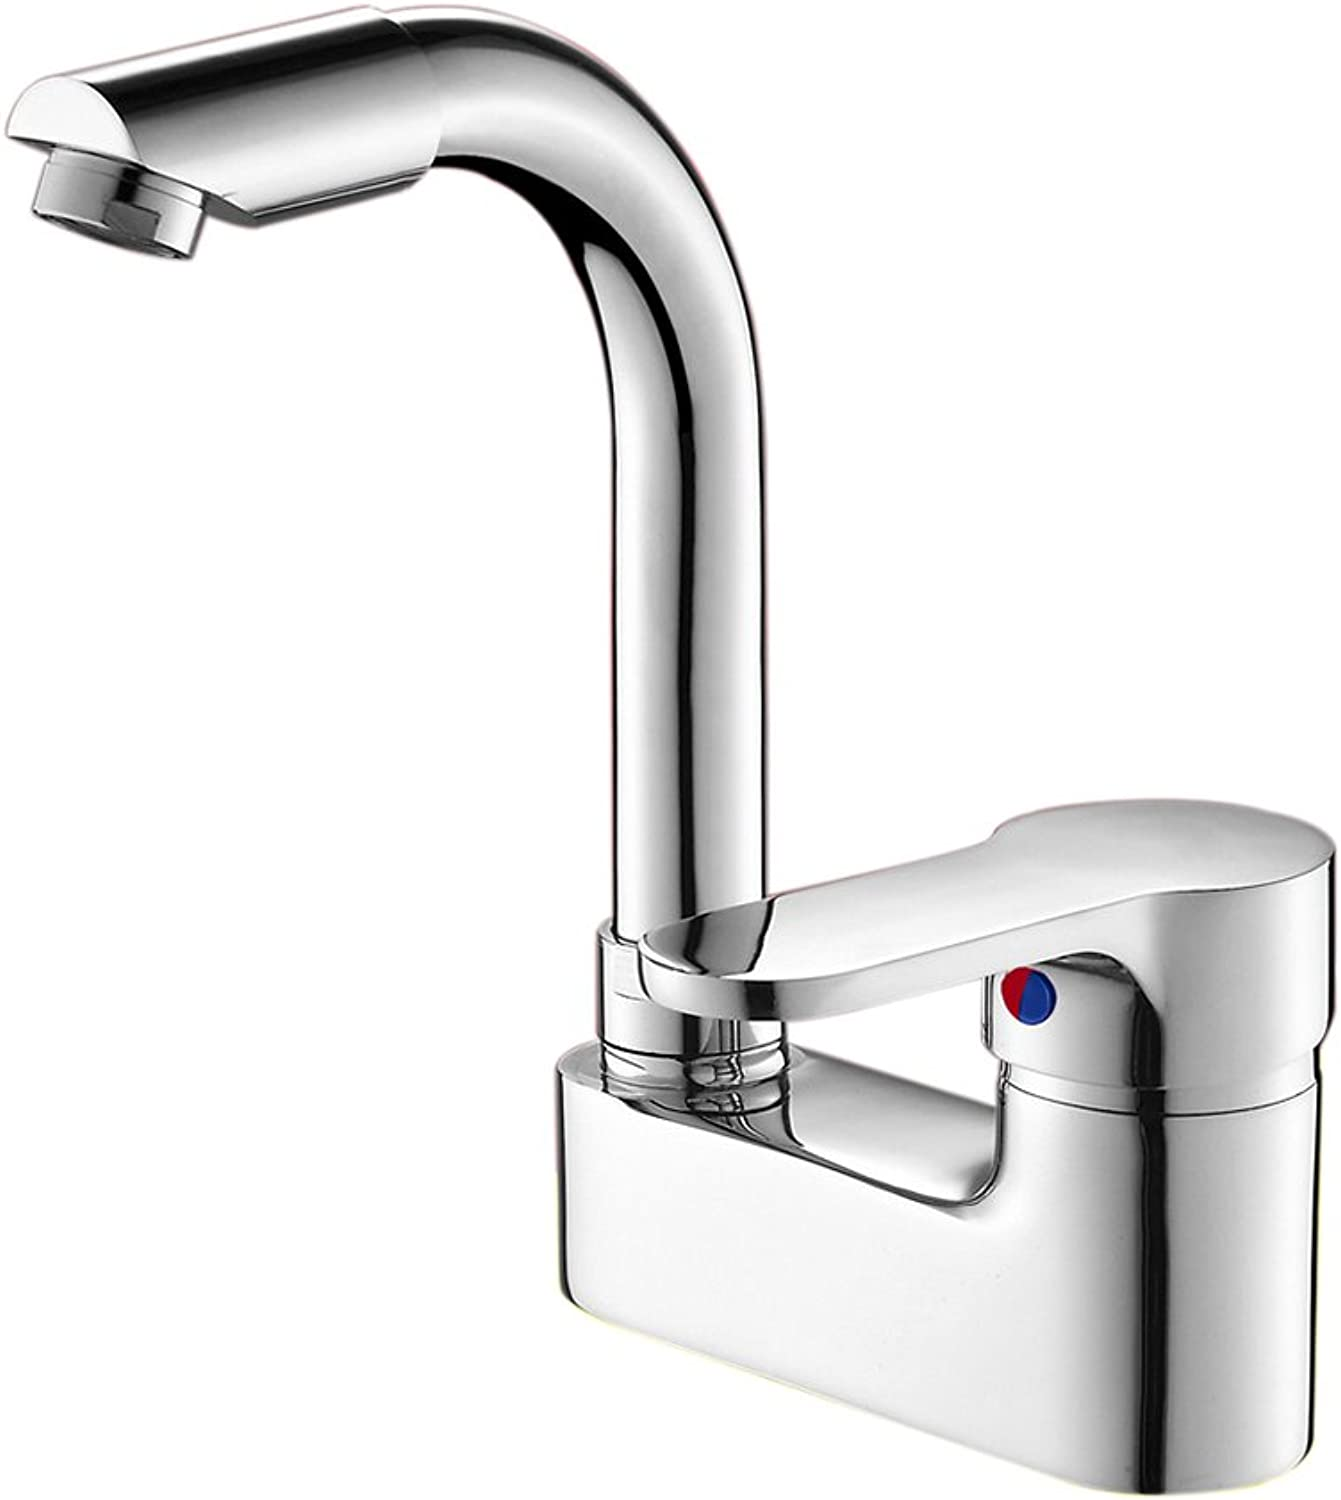 Faucet Full Copper Double Hole Basin Faucet, redatable Bathroom Bathroom Three Hole Wash Basin Basin Basin Basin Faucet, Single Handle Double Hot And Cold Water Mixing Valve Conversion Faucet